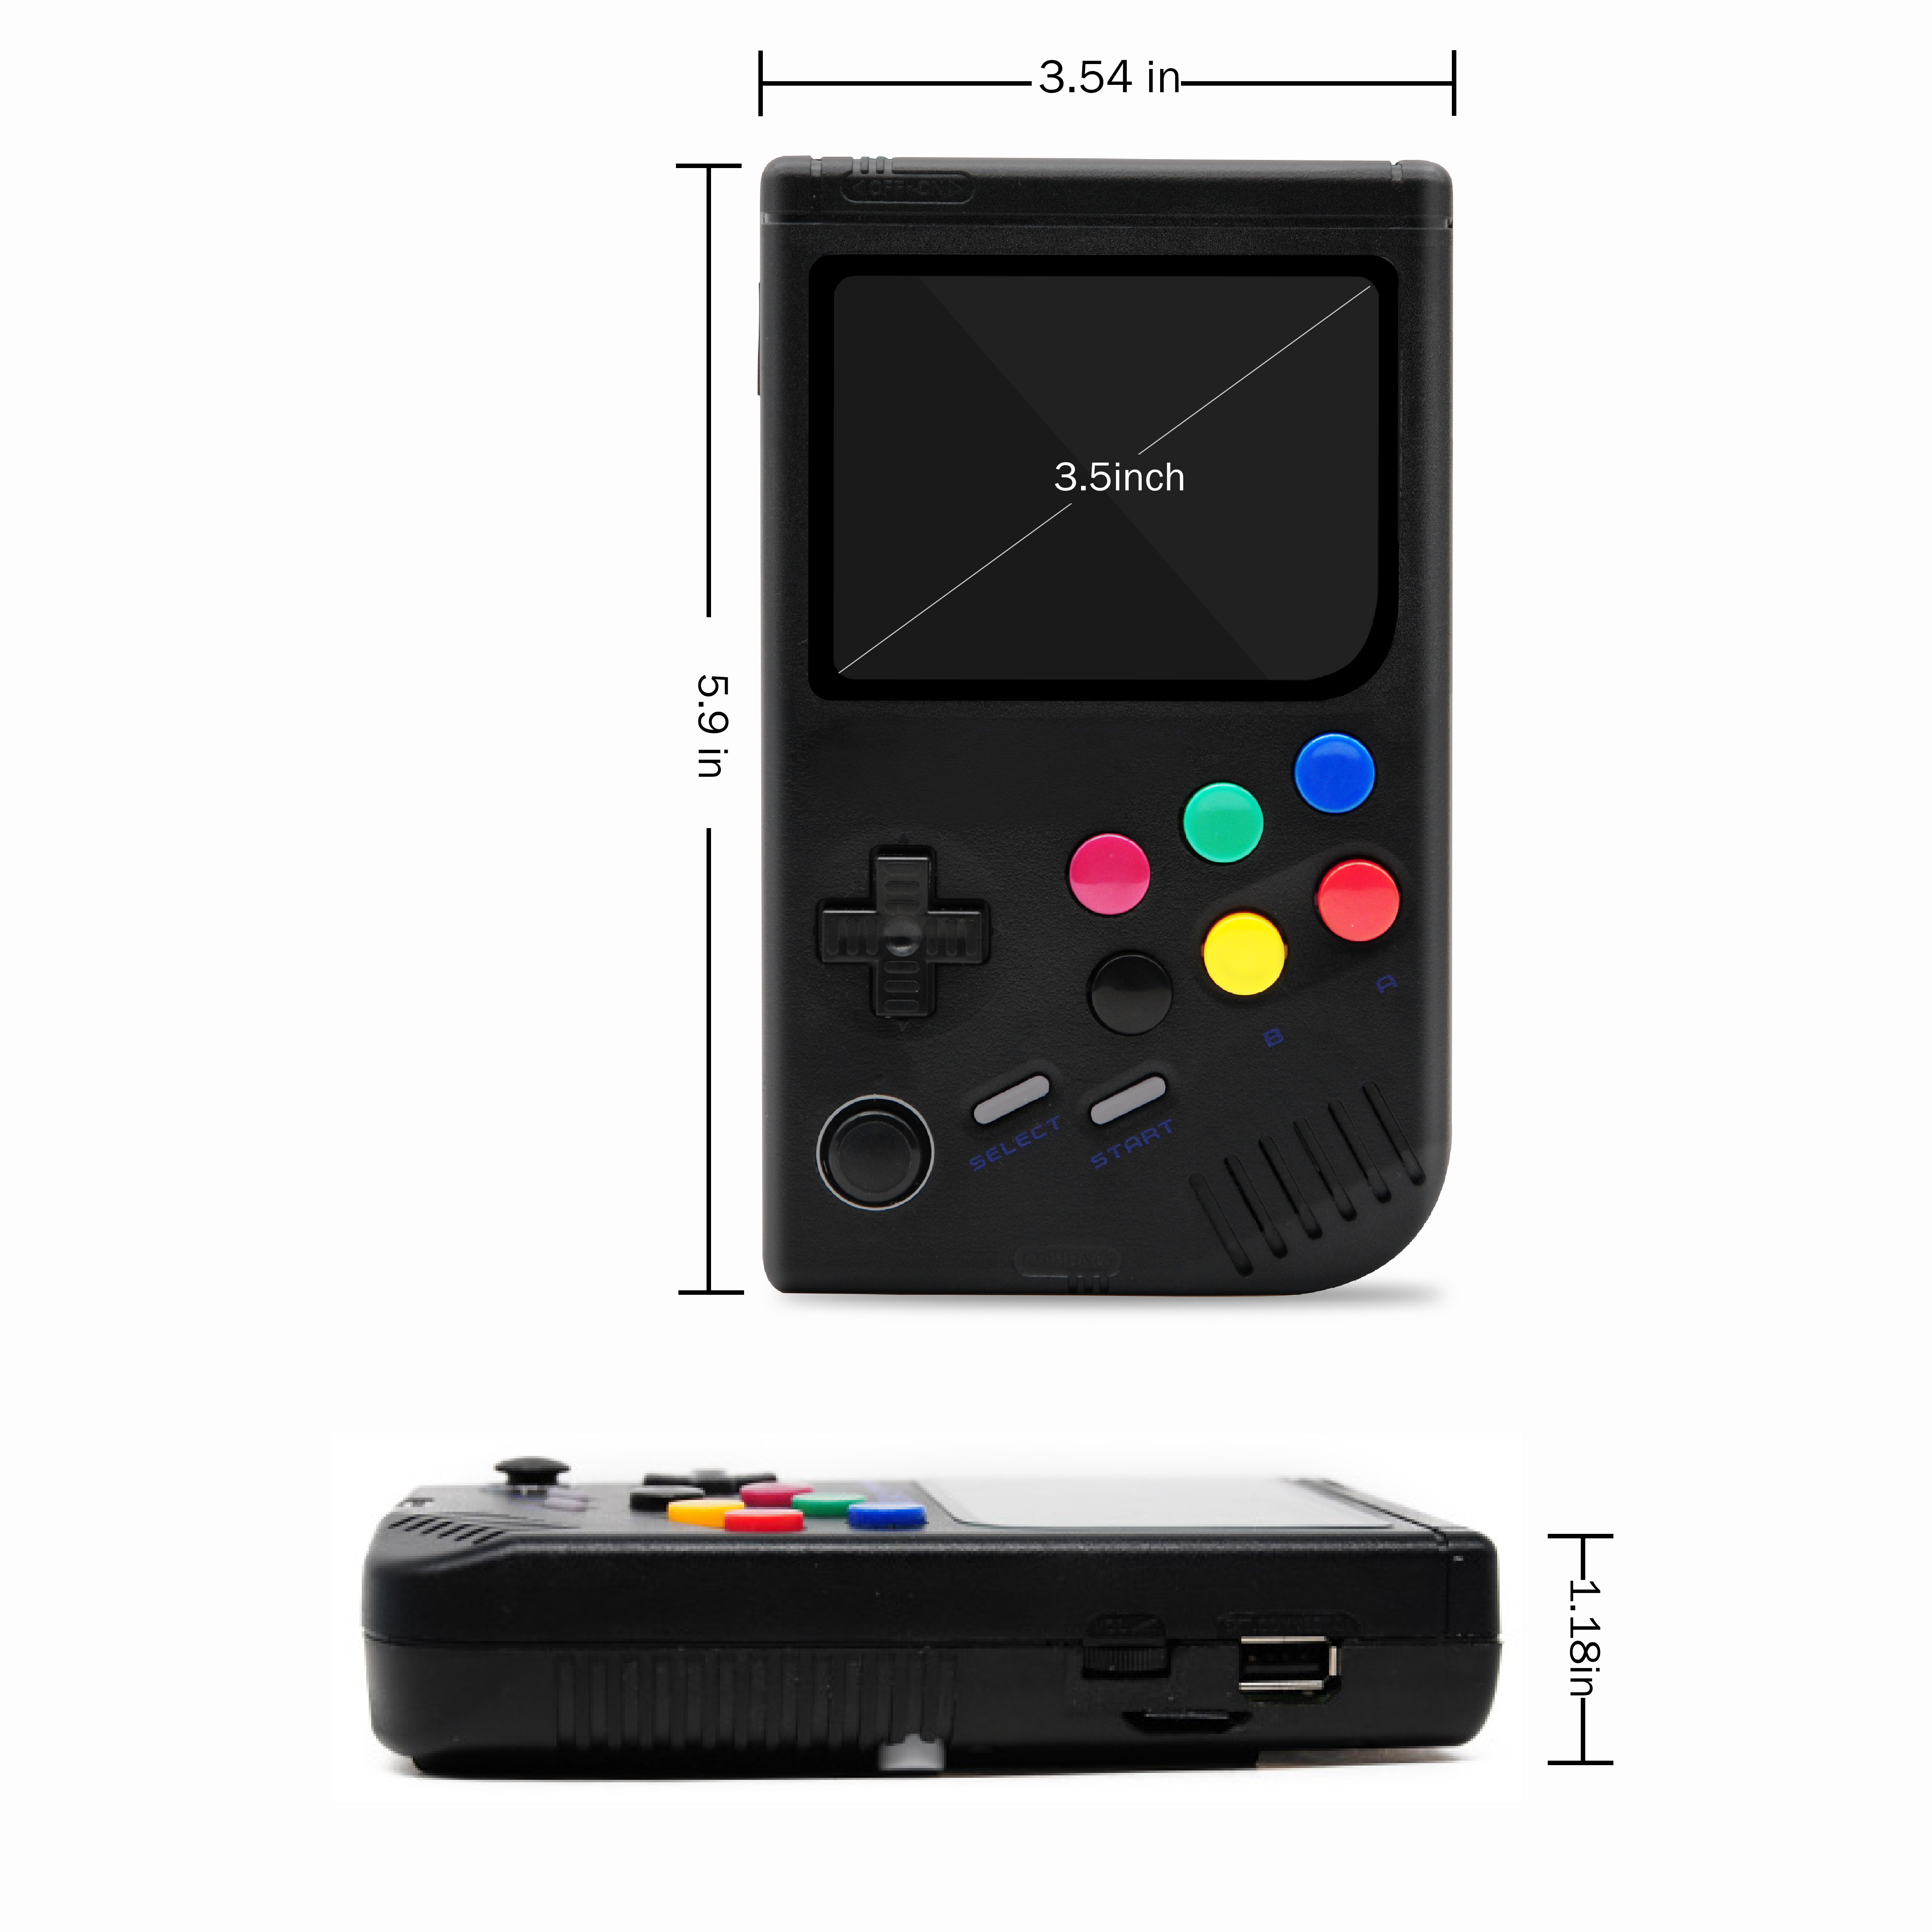 Dikdoc LCL Pi Retro Video Game Console Player Raspberry Pi 3B Handheld Game with 3.5 Inch IPS Screen Built in 10000 Games-in Handheld Game Players from Consumer Electronics    3